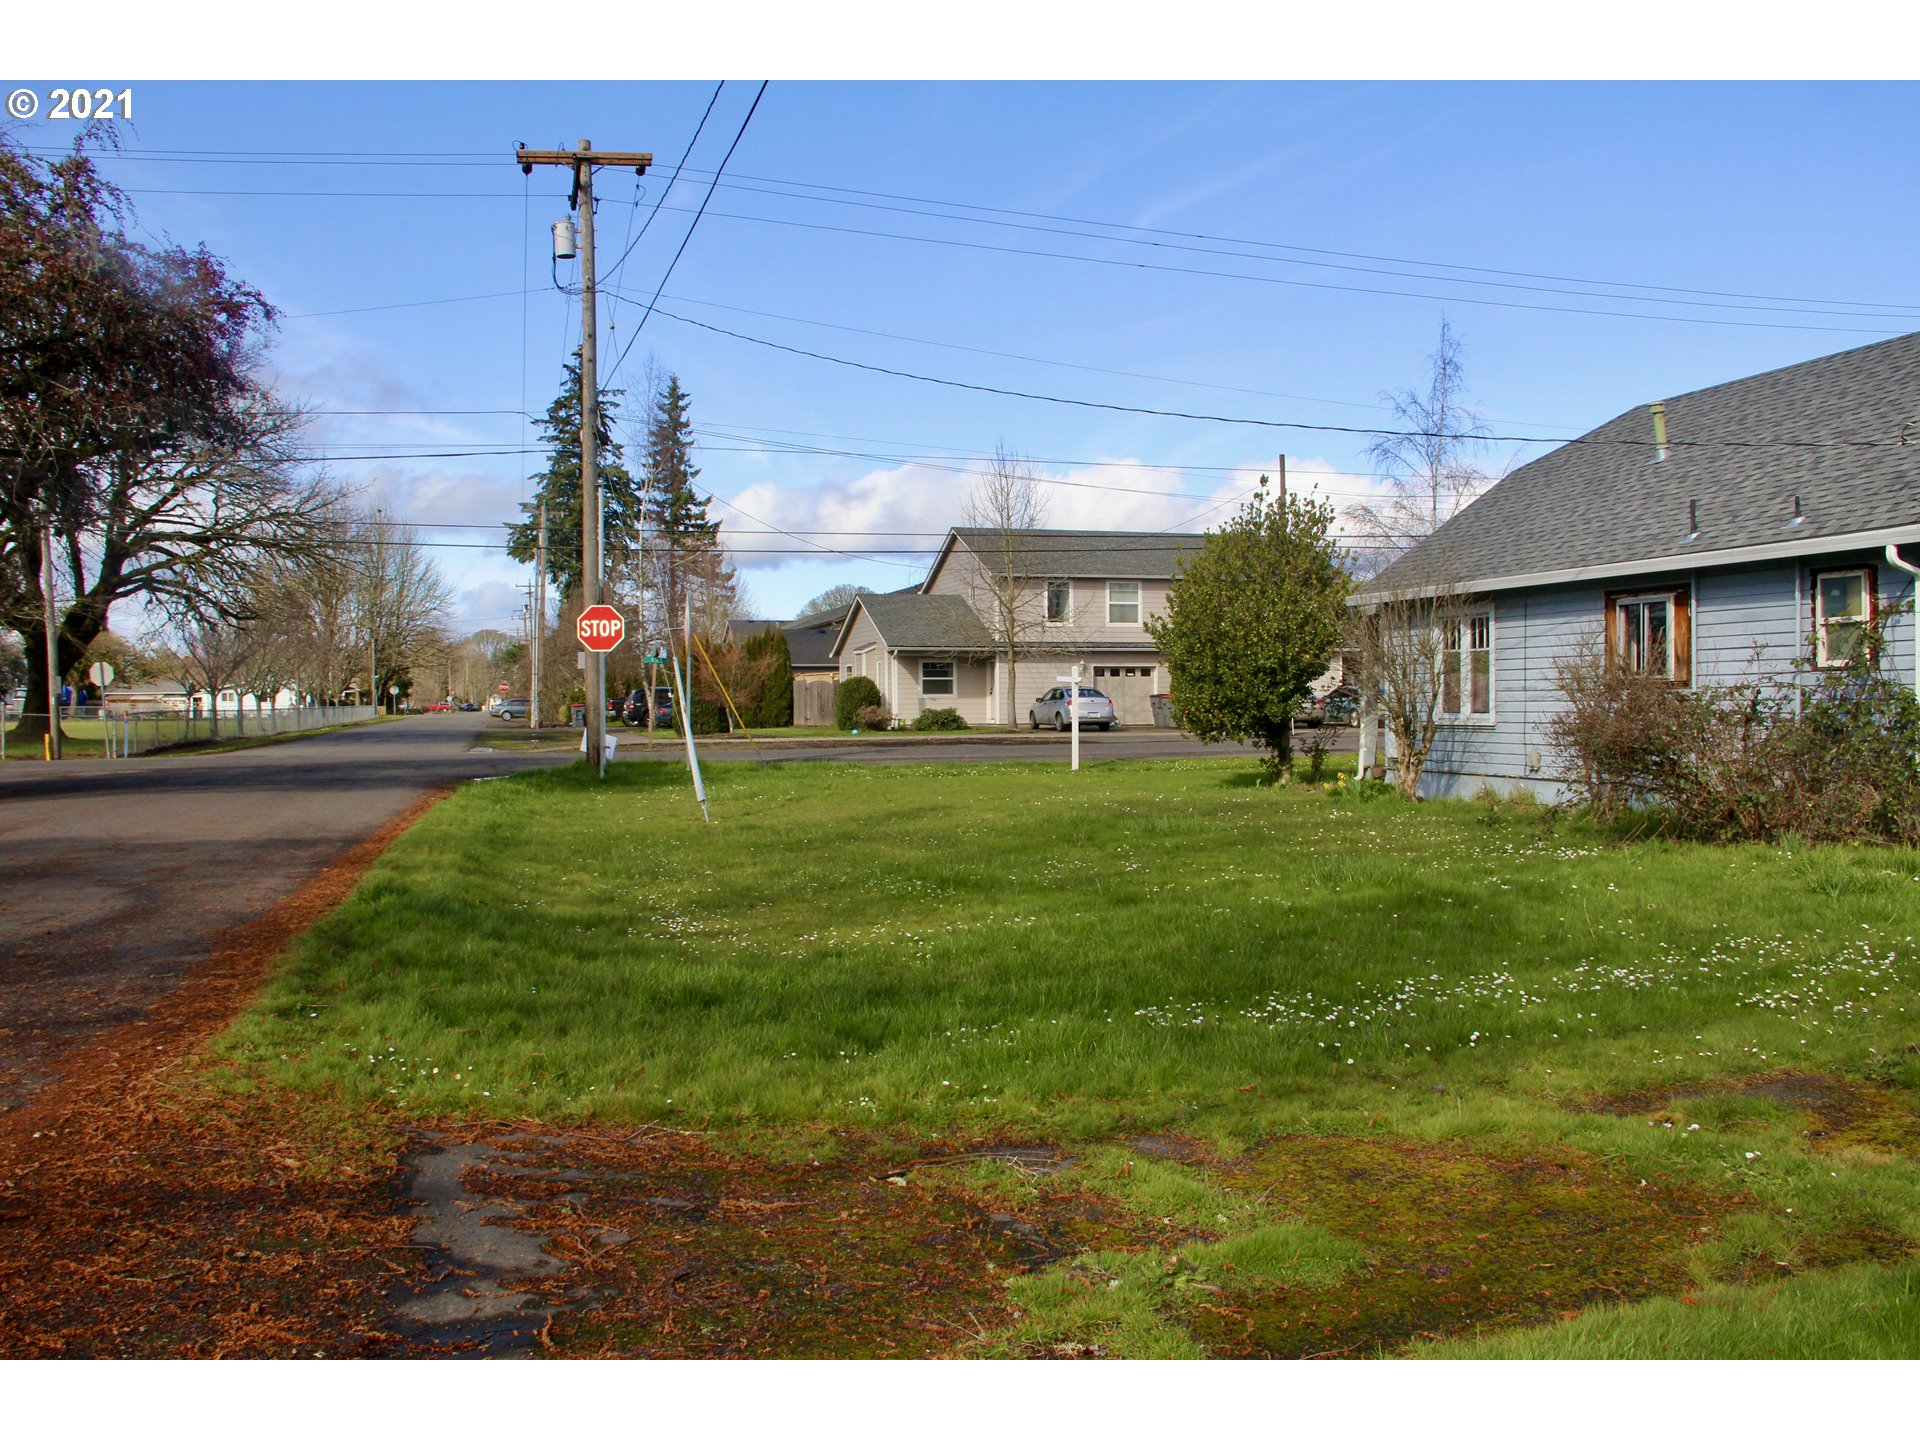 211 5TH ST, AMITY, Oregon 97101, 2 Bedrooms Bedrooms, ,1 BathroomBathrooms,Single Family,For Sale,211 5TH ST,1,21490036